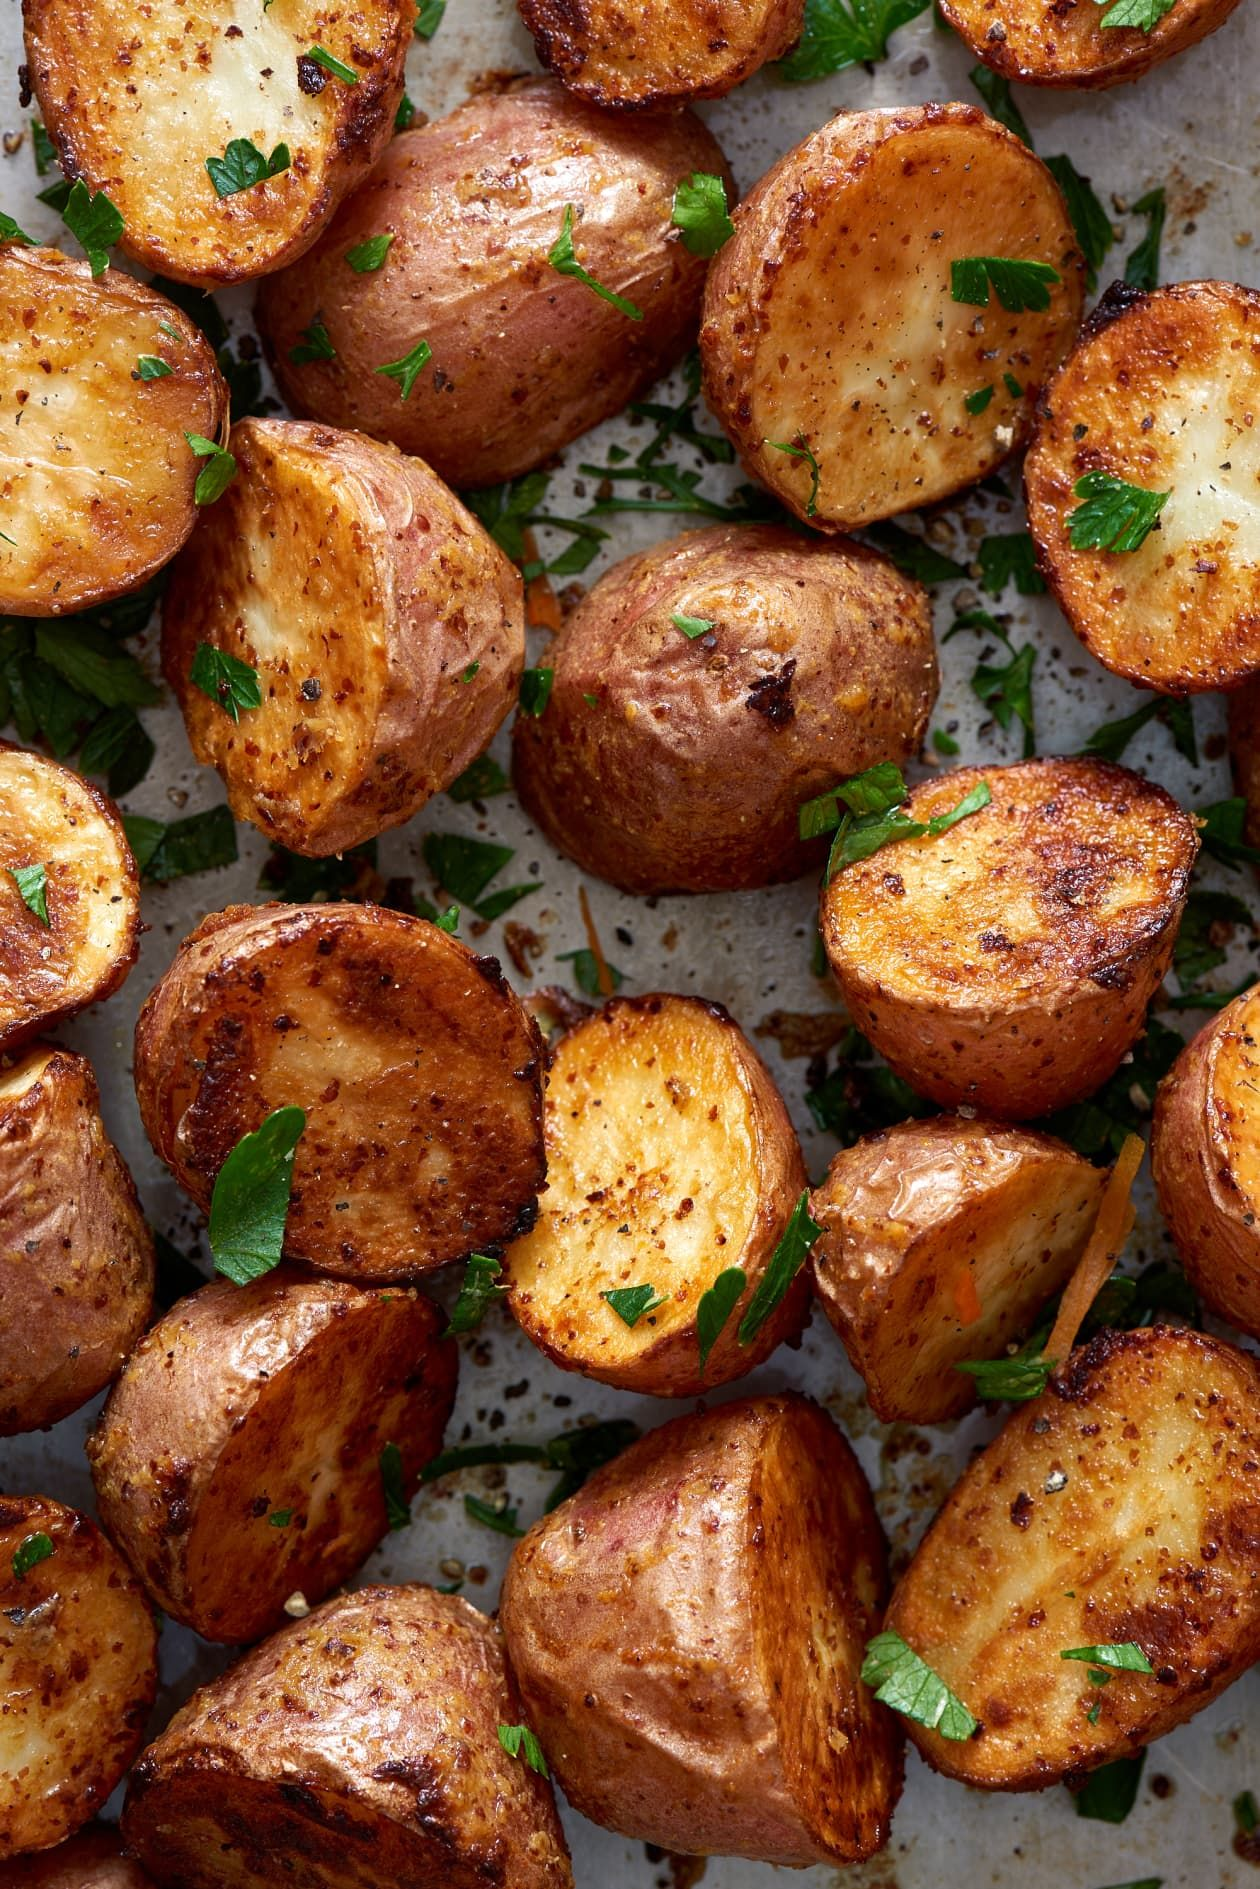 15 Easy Side Dishes to Serve with Prime Rib   Side dishes easy, Potato side dishes, Pork chop ...